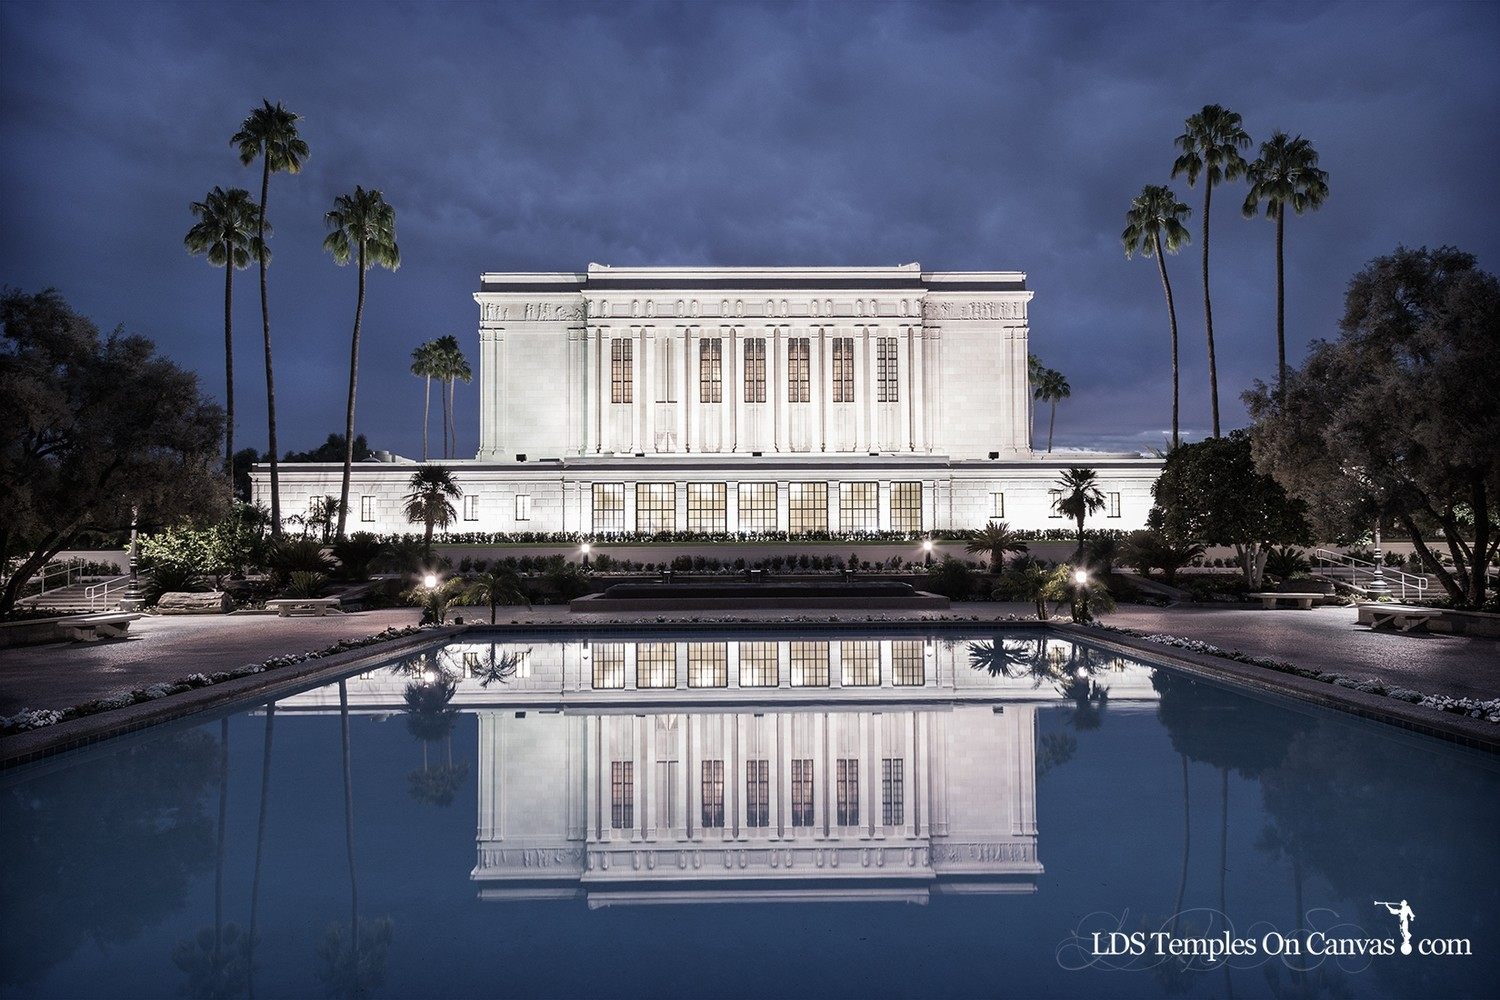 Mesa Arizona LDS Temple - Pioneer Reflections - Tinted Black & White